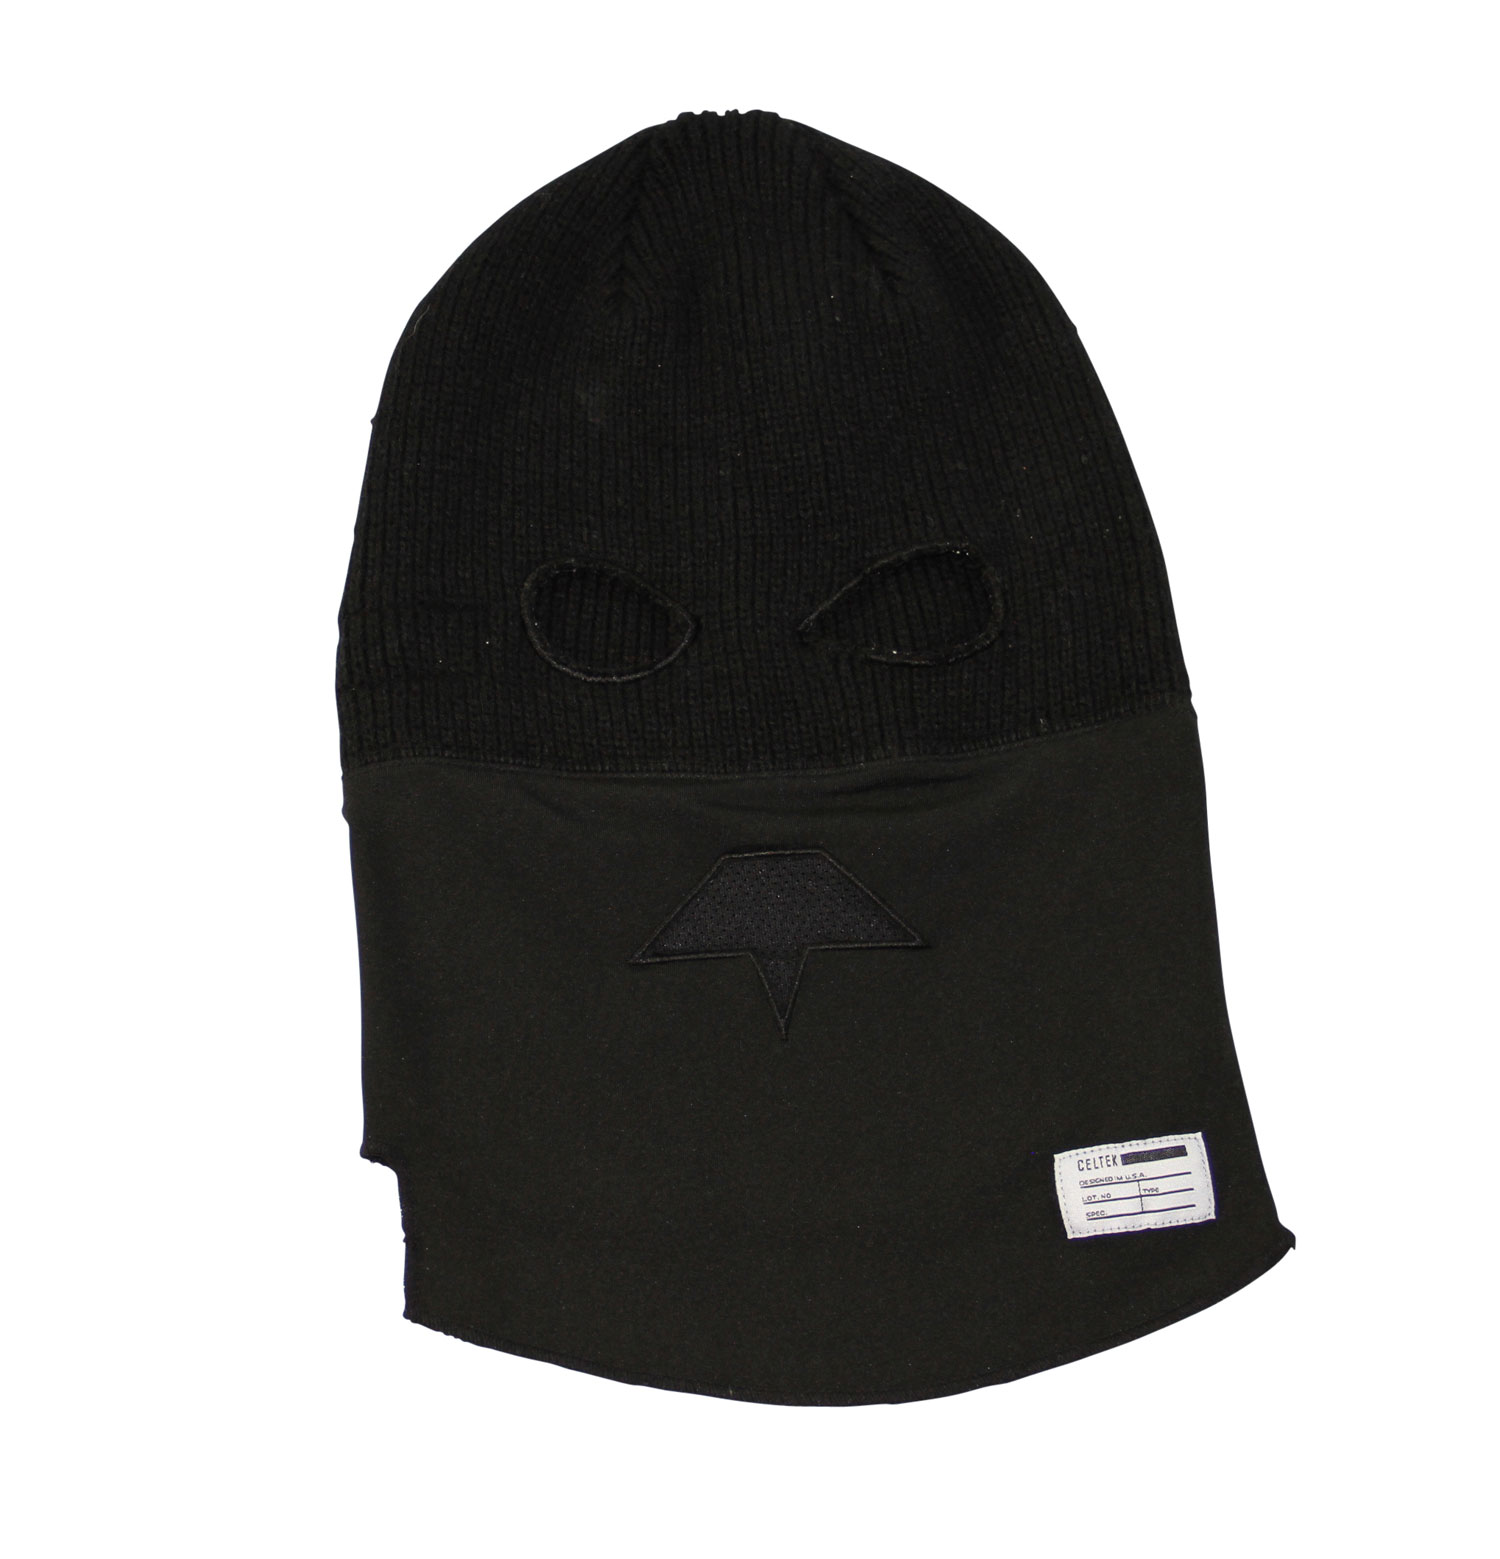 It gets cold on the slopes, and everyone needs good protection to keep them warm while shredding snow. The Celtek Clyde Facemask is a convertible beanie that turns into a facemask to protect delicate features on even the coldest of days. It's a one-size-fits-all mask that fits snugly on any head. It's warm and comfortable, made from an acrylic and polyester fleece blend so that it's just as soft as it is warm. It's stylish so any snowboarder would be proud to wear this Celtek Clyde Facemask on or off the slopes.  Beanie & Facemask in One   50% Acrylic 50% Poly Fleece   Roll-Up Hideaway Facemask   Always Prepared for Winter - $17.95